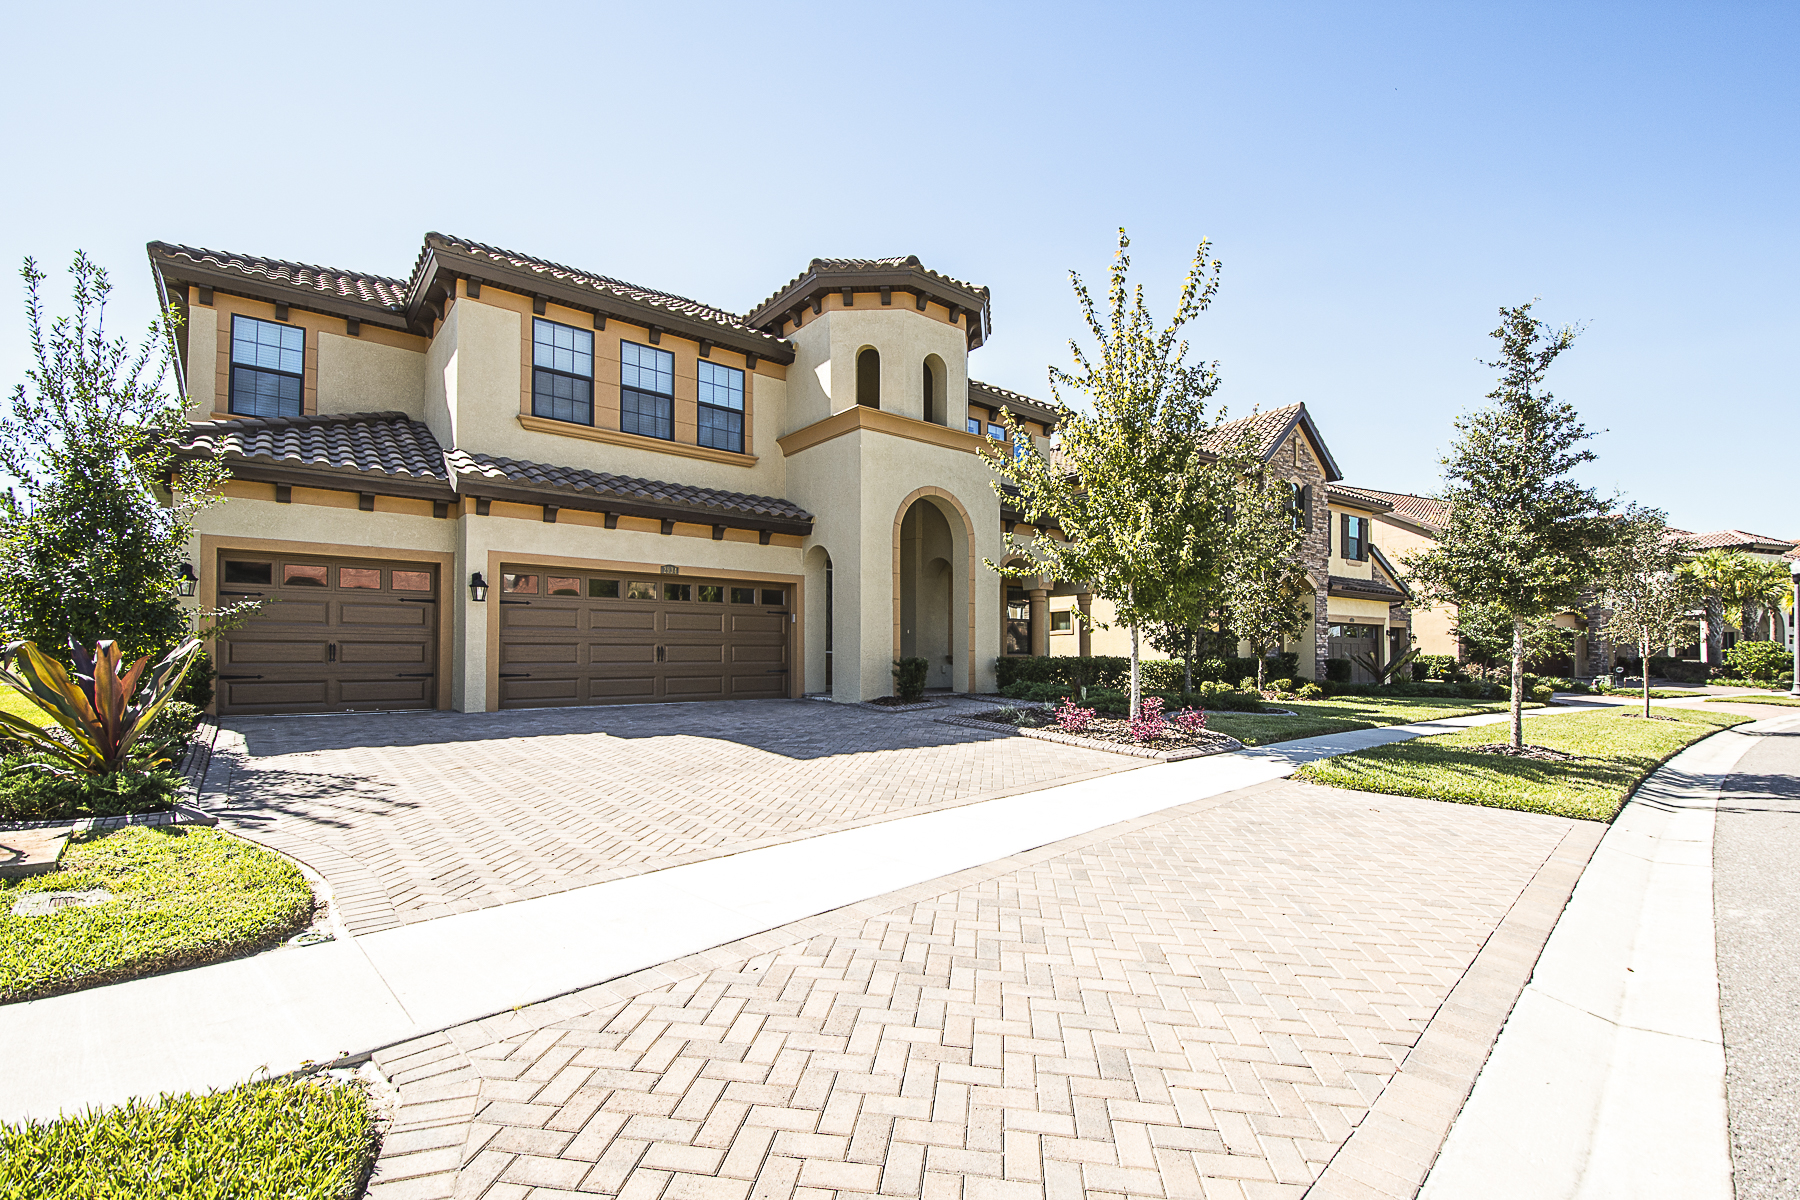 NEW TO THE MARKET!!! 2934 CALVANO DR, LAND O LAKES, FL 34639